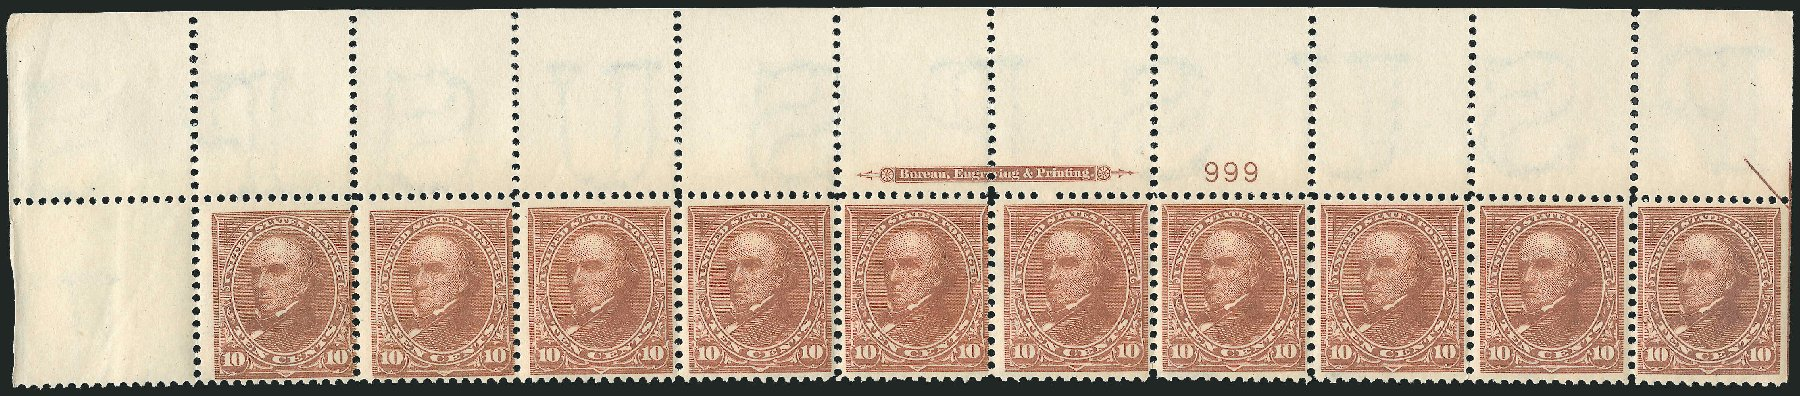 Values of US Stamp Scott 283 - 10c 1898 Webster. Robert Siegel Auction Galleries, Feb 2015, Sale 1092, Lot 1226